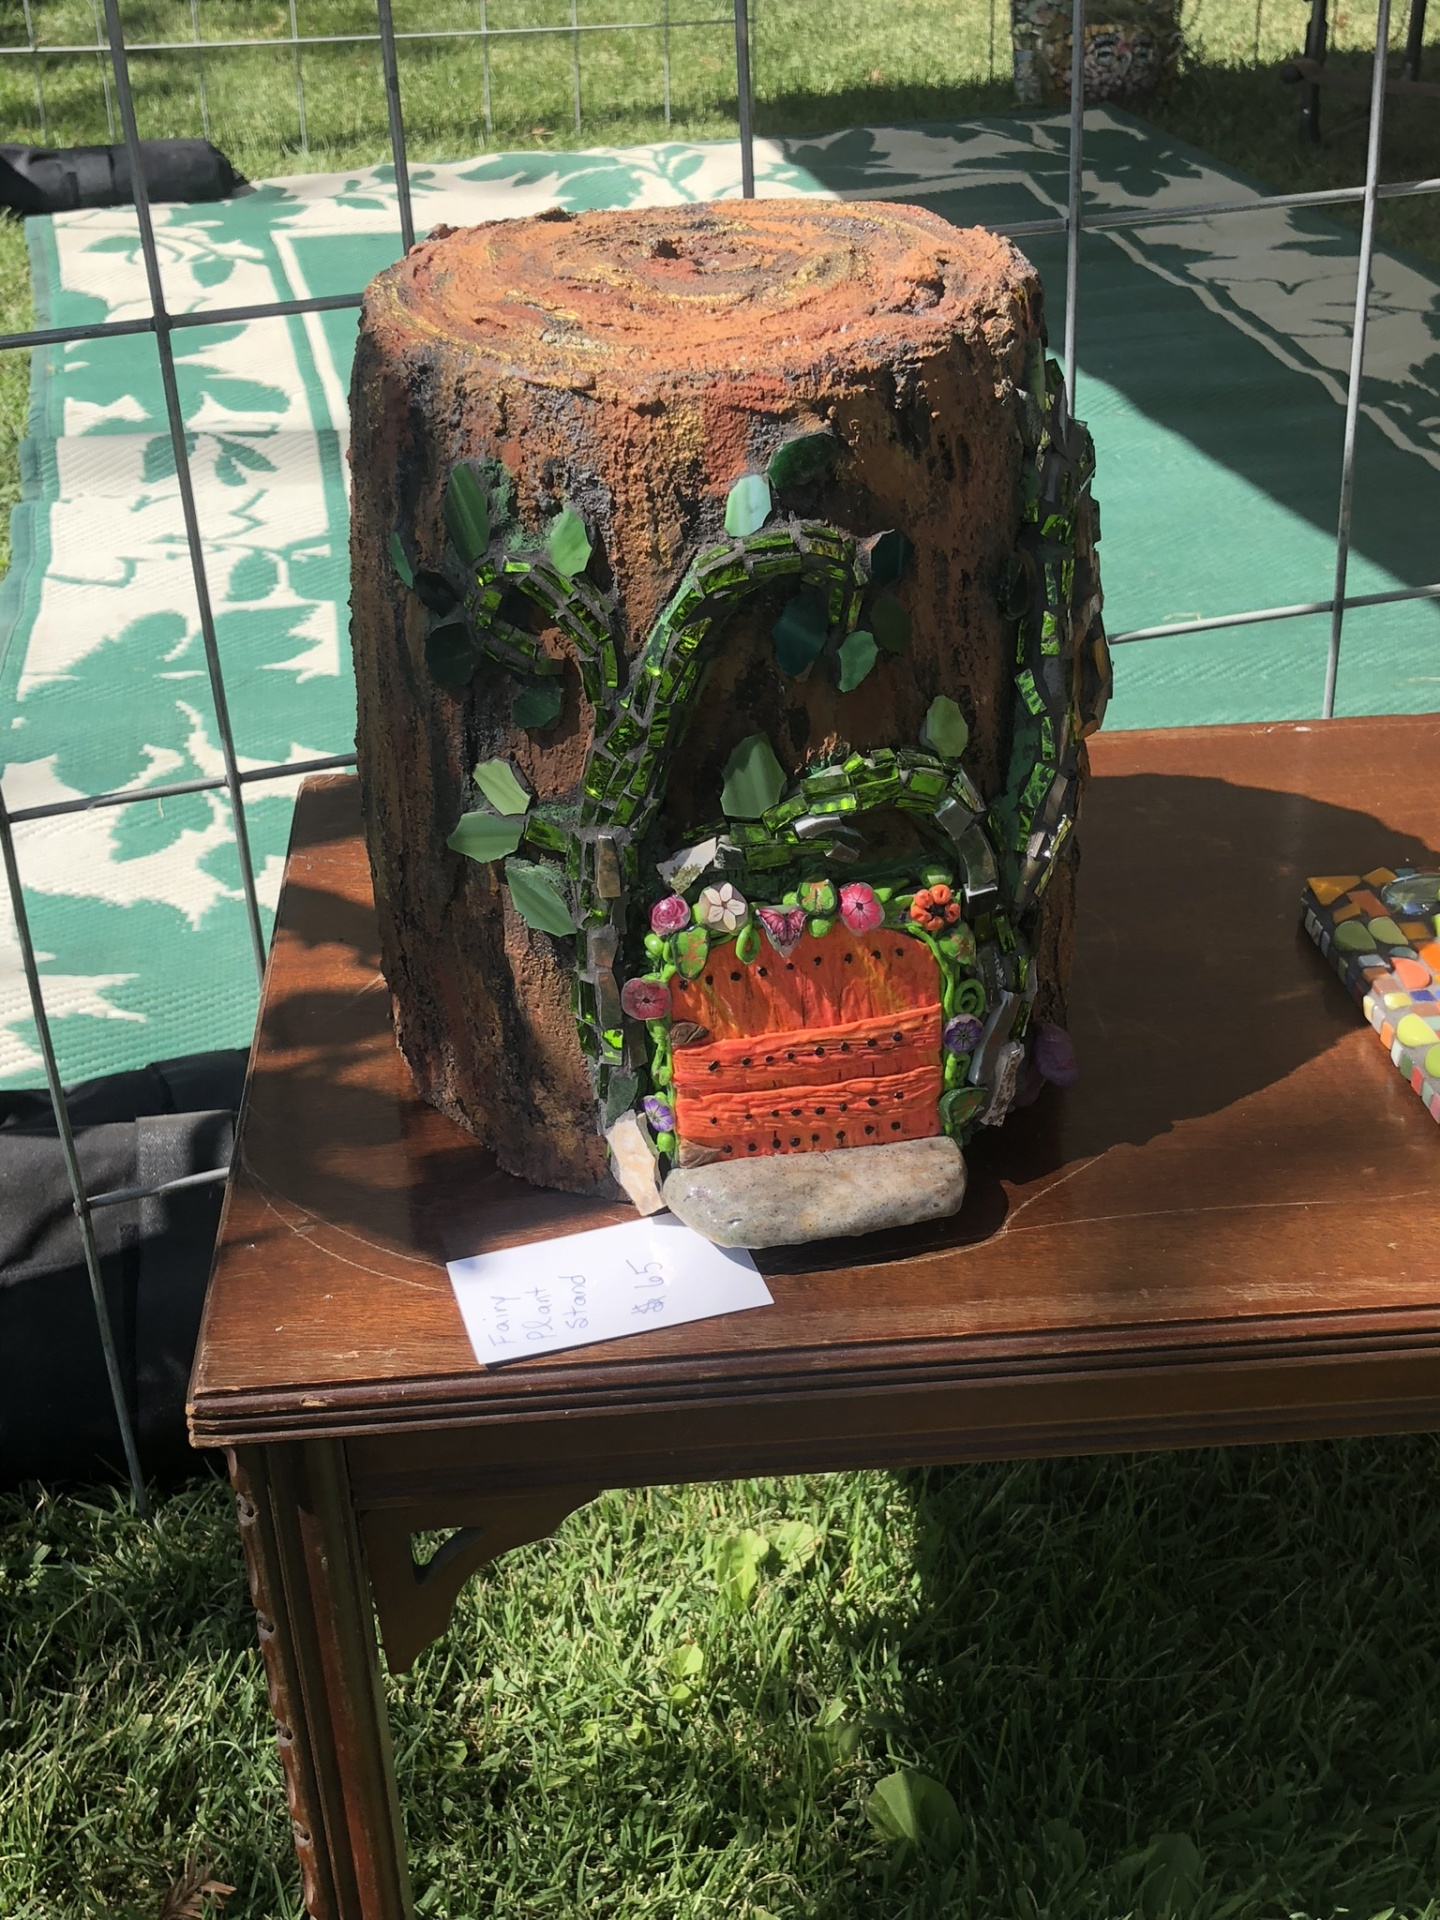 New How To Video: How to make a concrete fairy house/tree stump plant stand